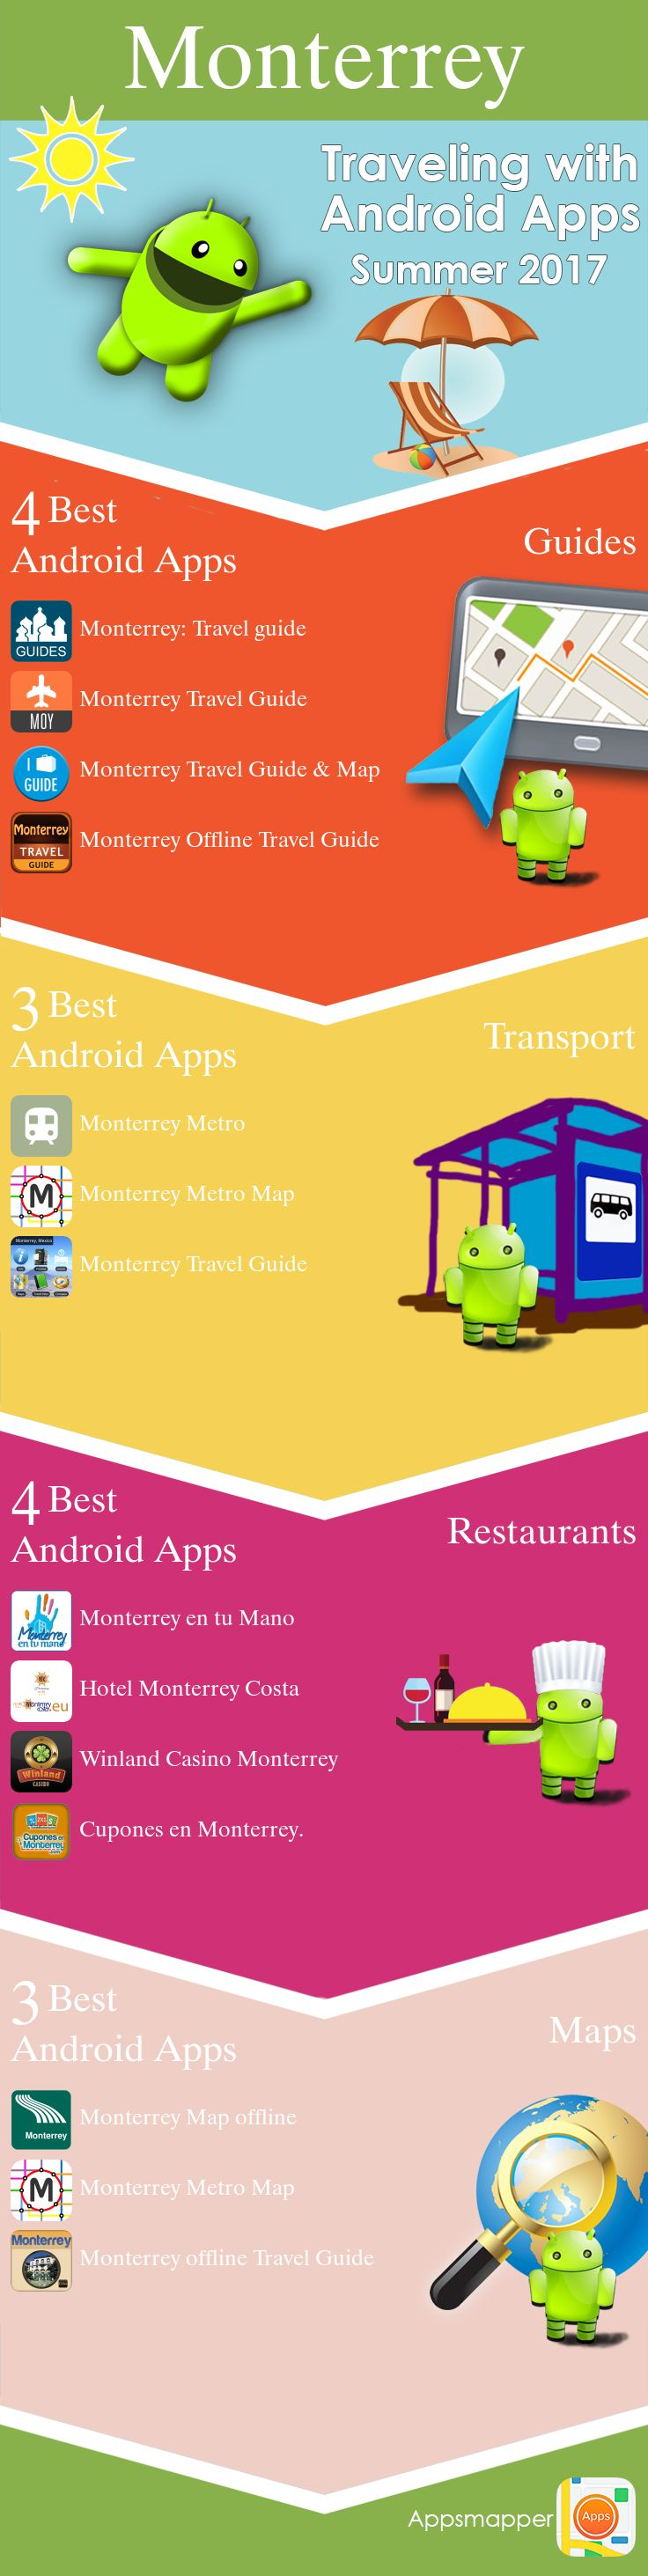 Monterrey Android apps: Travel Guides, Maps, Transportation, Biking, Museums, Parking, Sport and apps for Students.